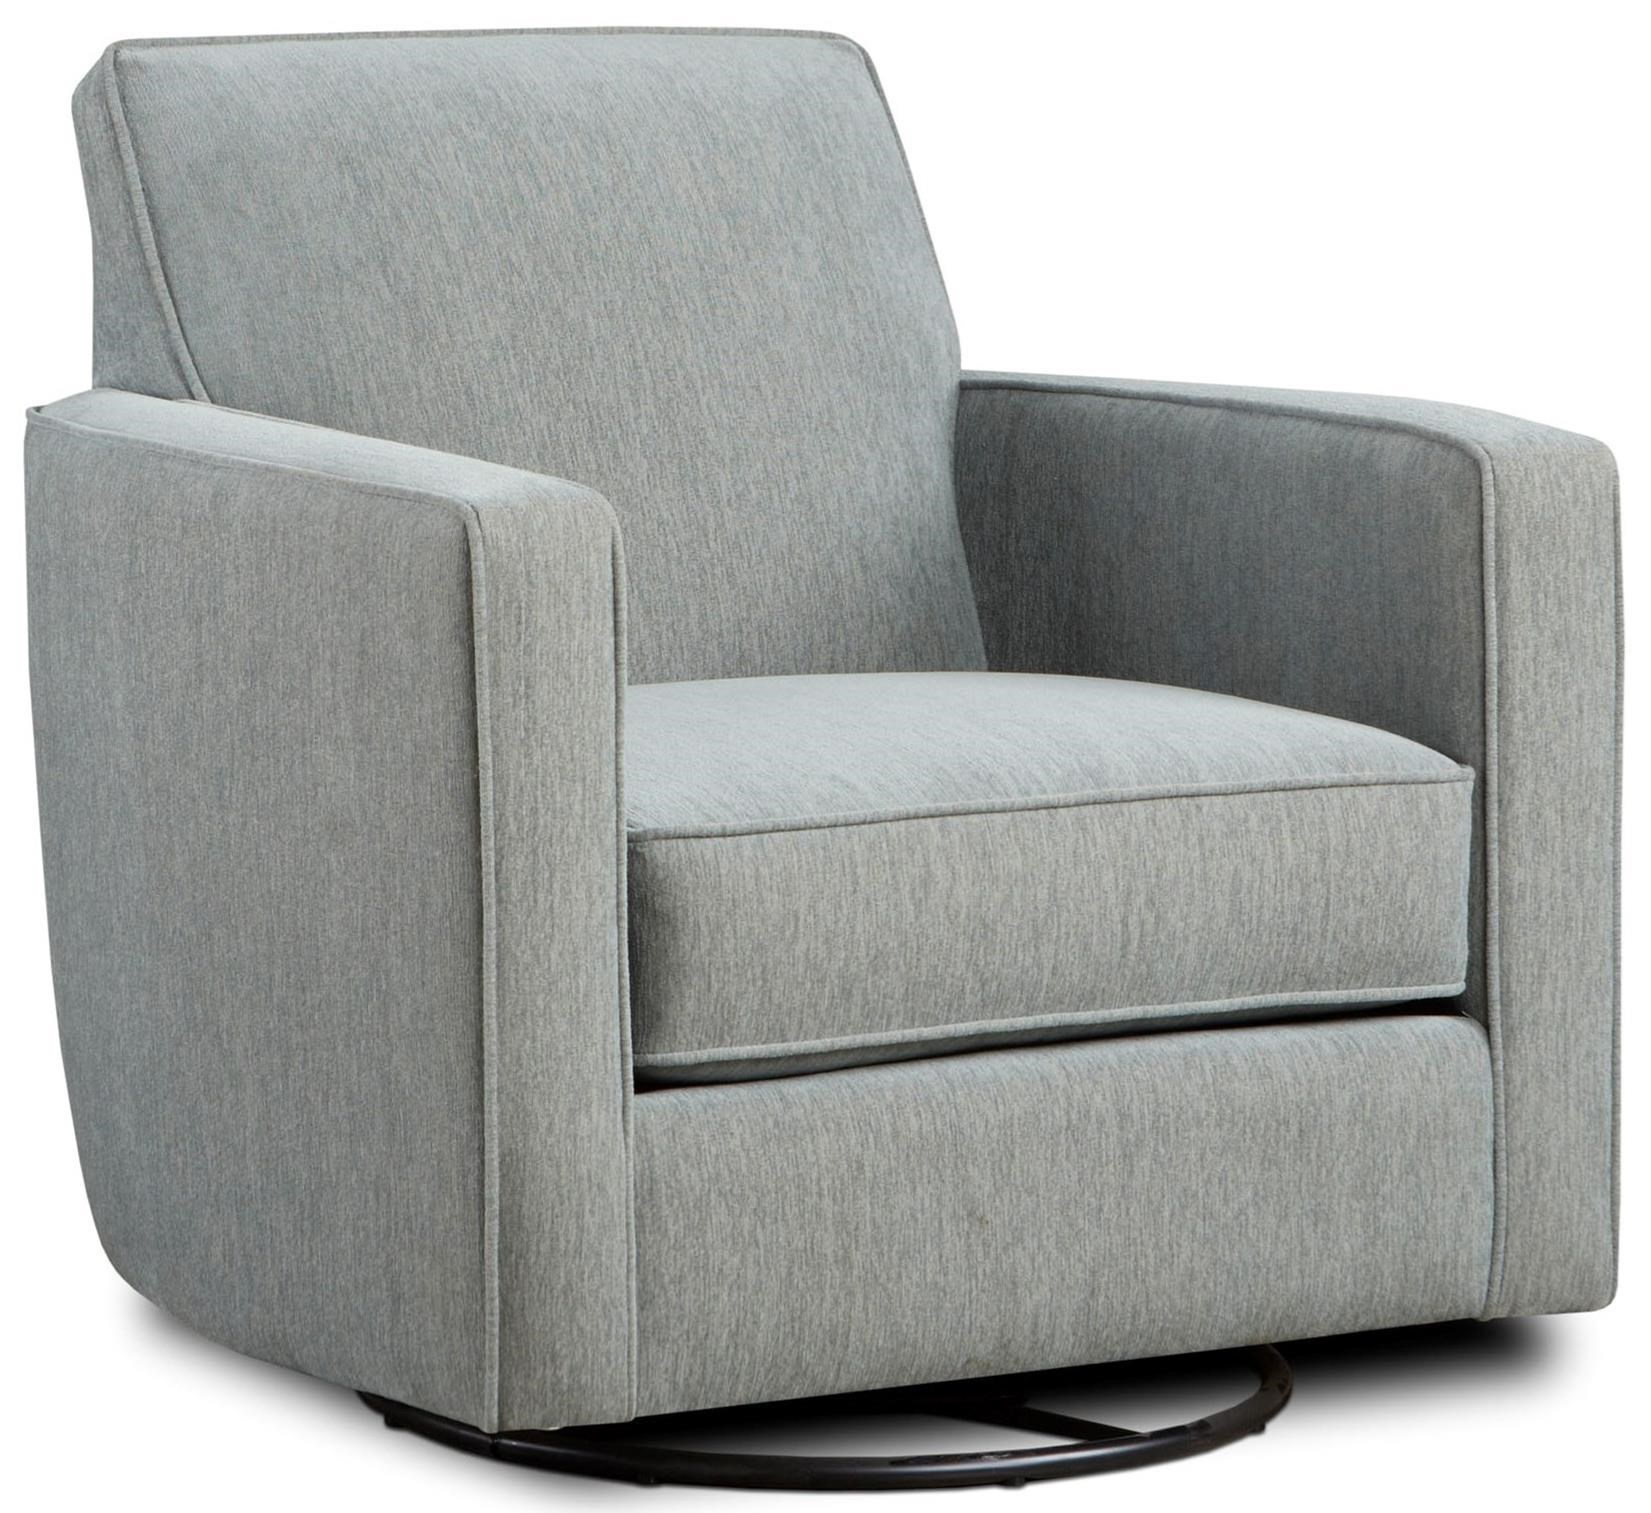 Swanky furniture Fusion Furniture 402gswivel Glider Colders Fusion Furniture 402g Contemporary Swivel Glider With Track Arms